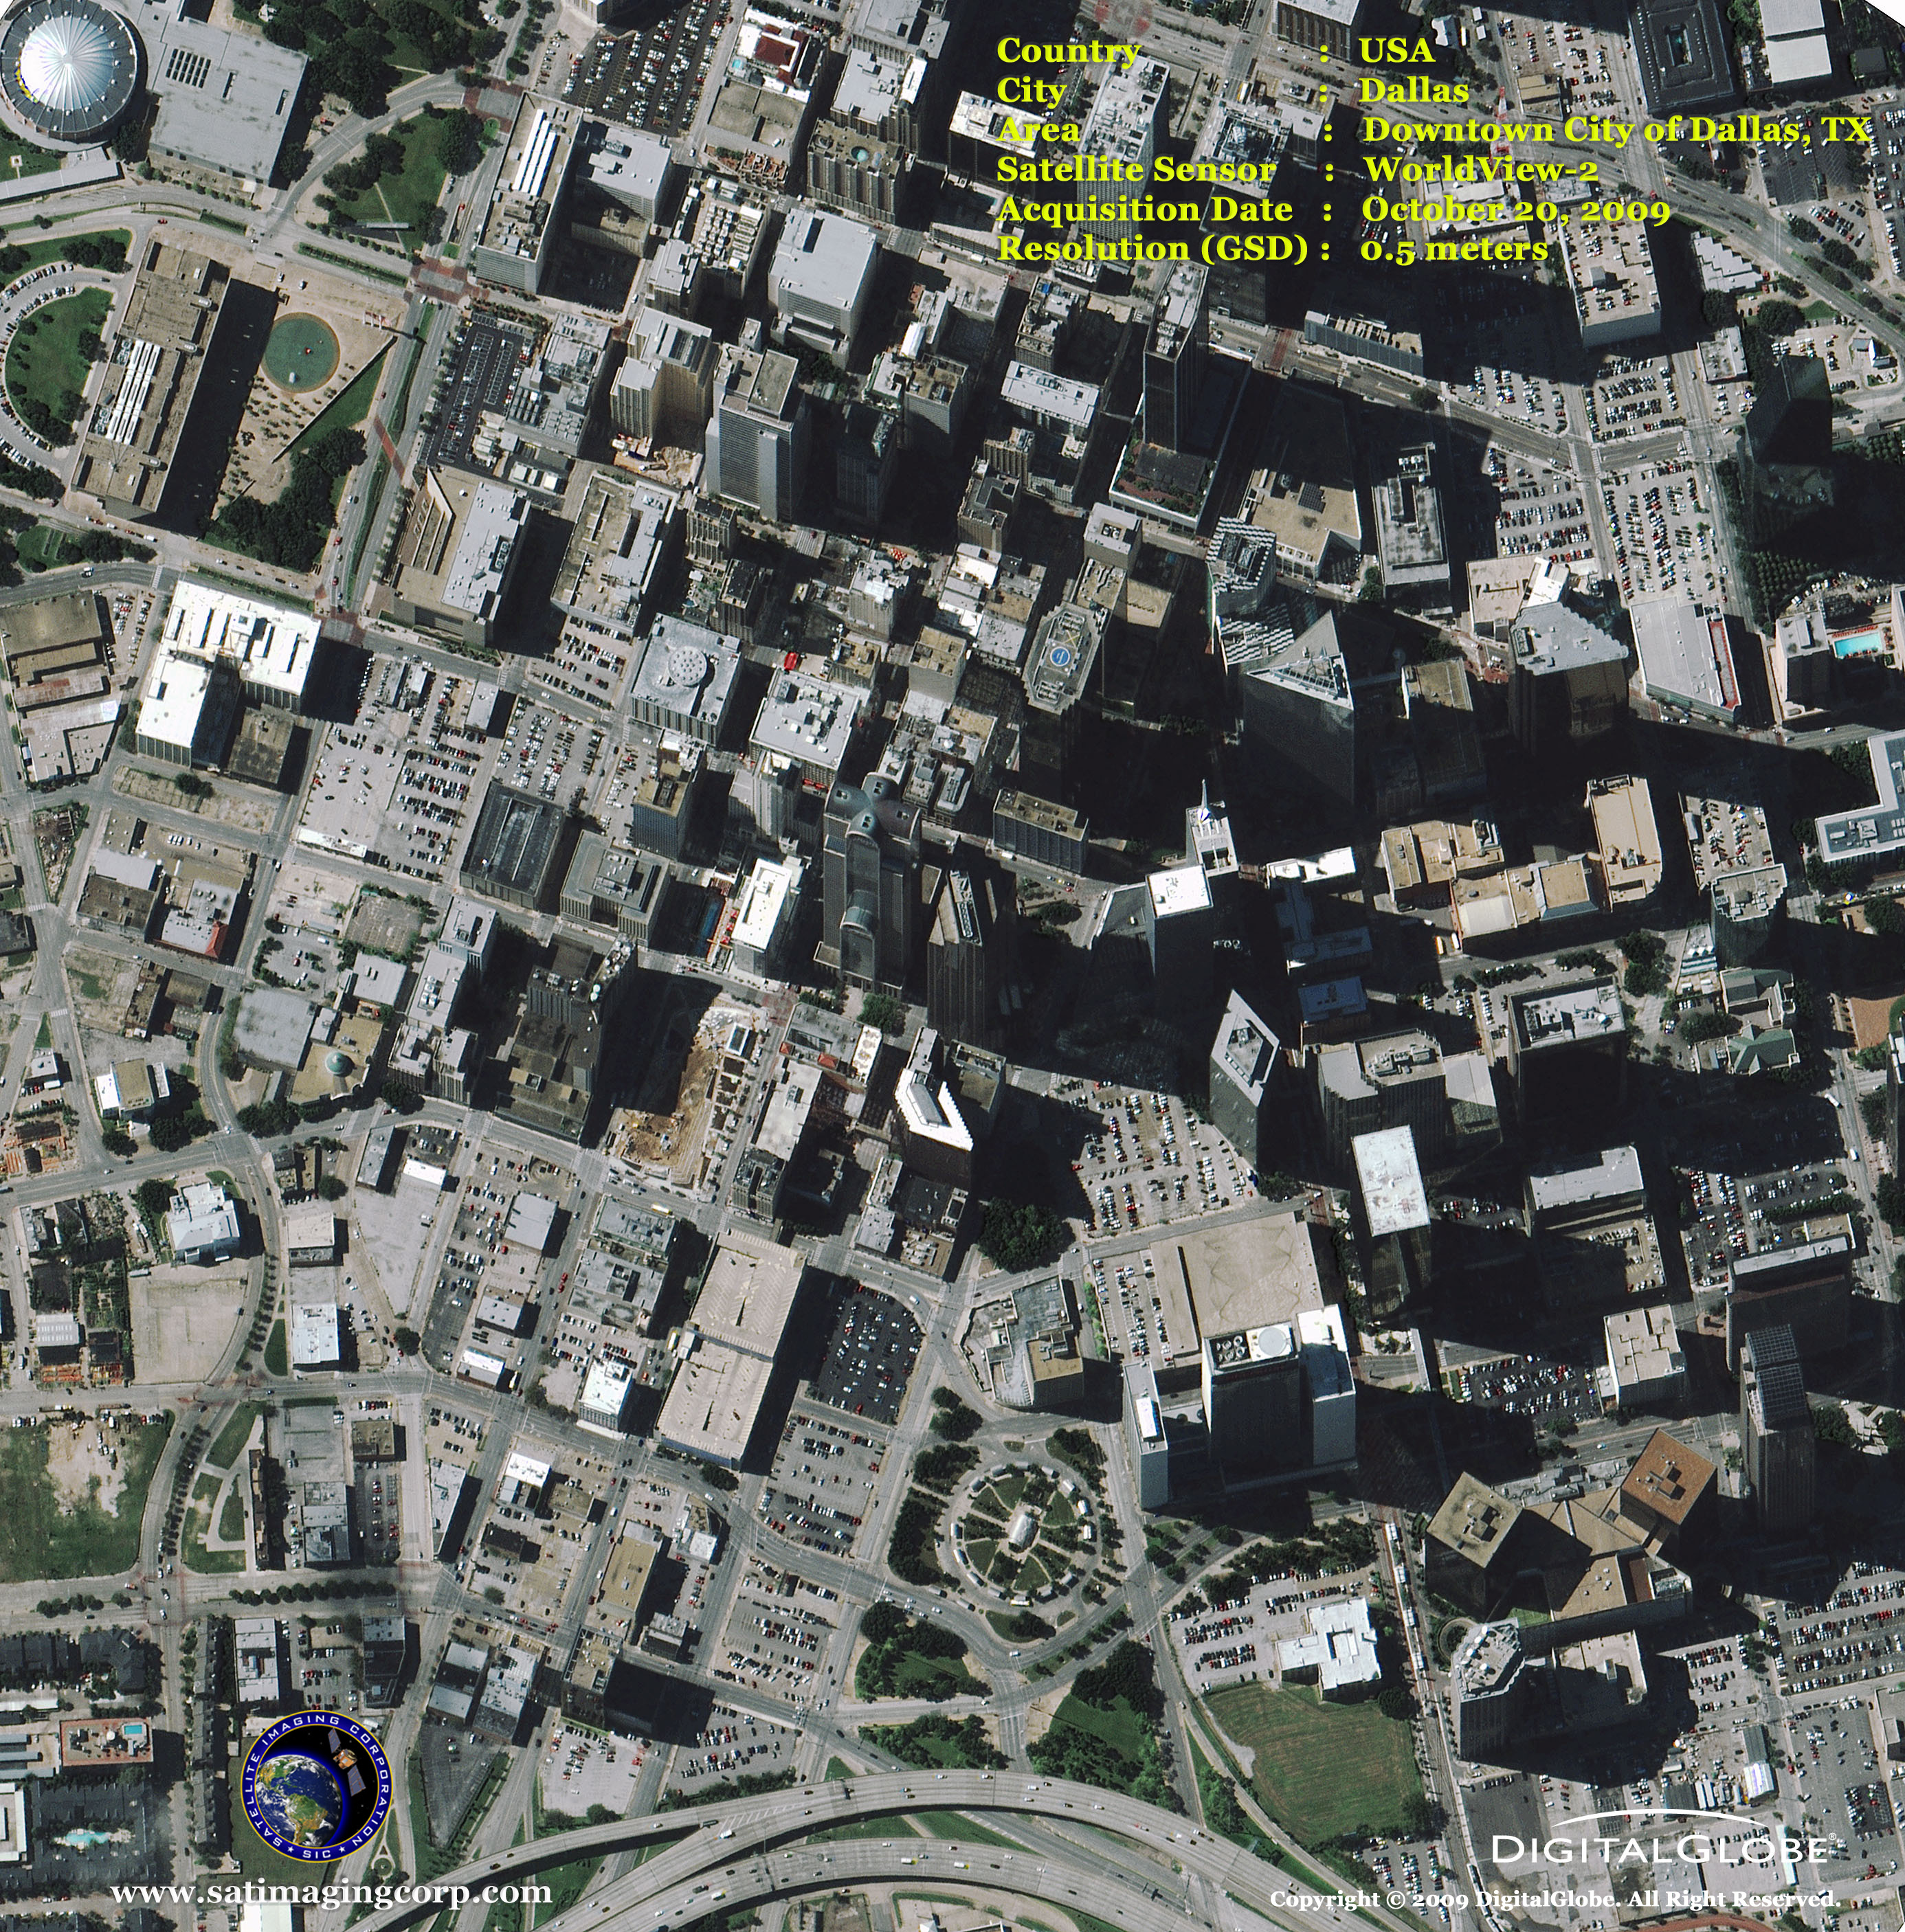 WorldView Satellite Image Downtown Dallas Satellite Imaging Corp - Worldview satellite image